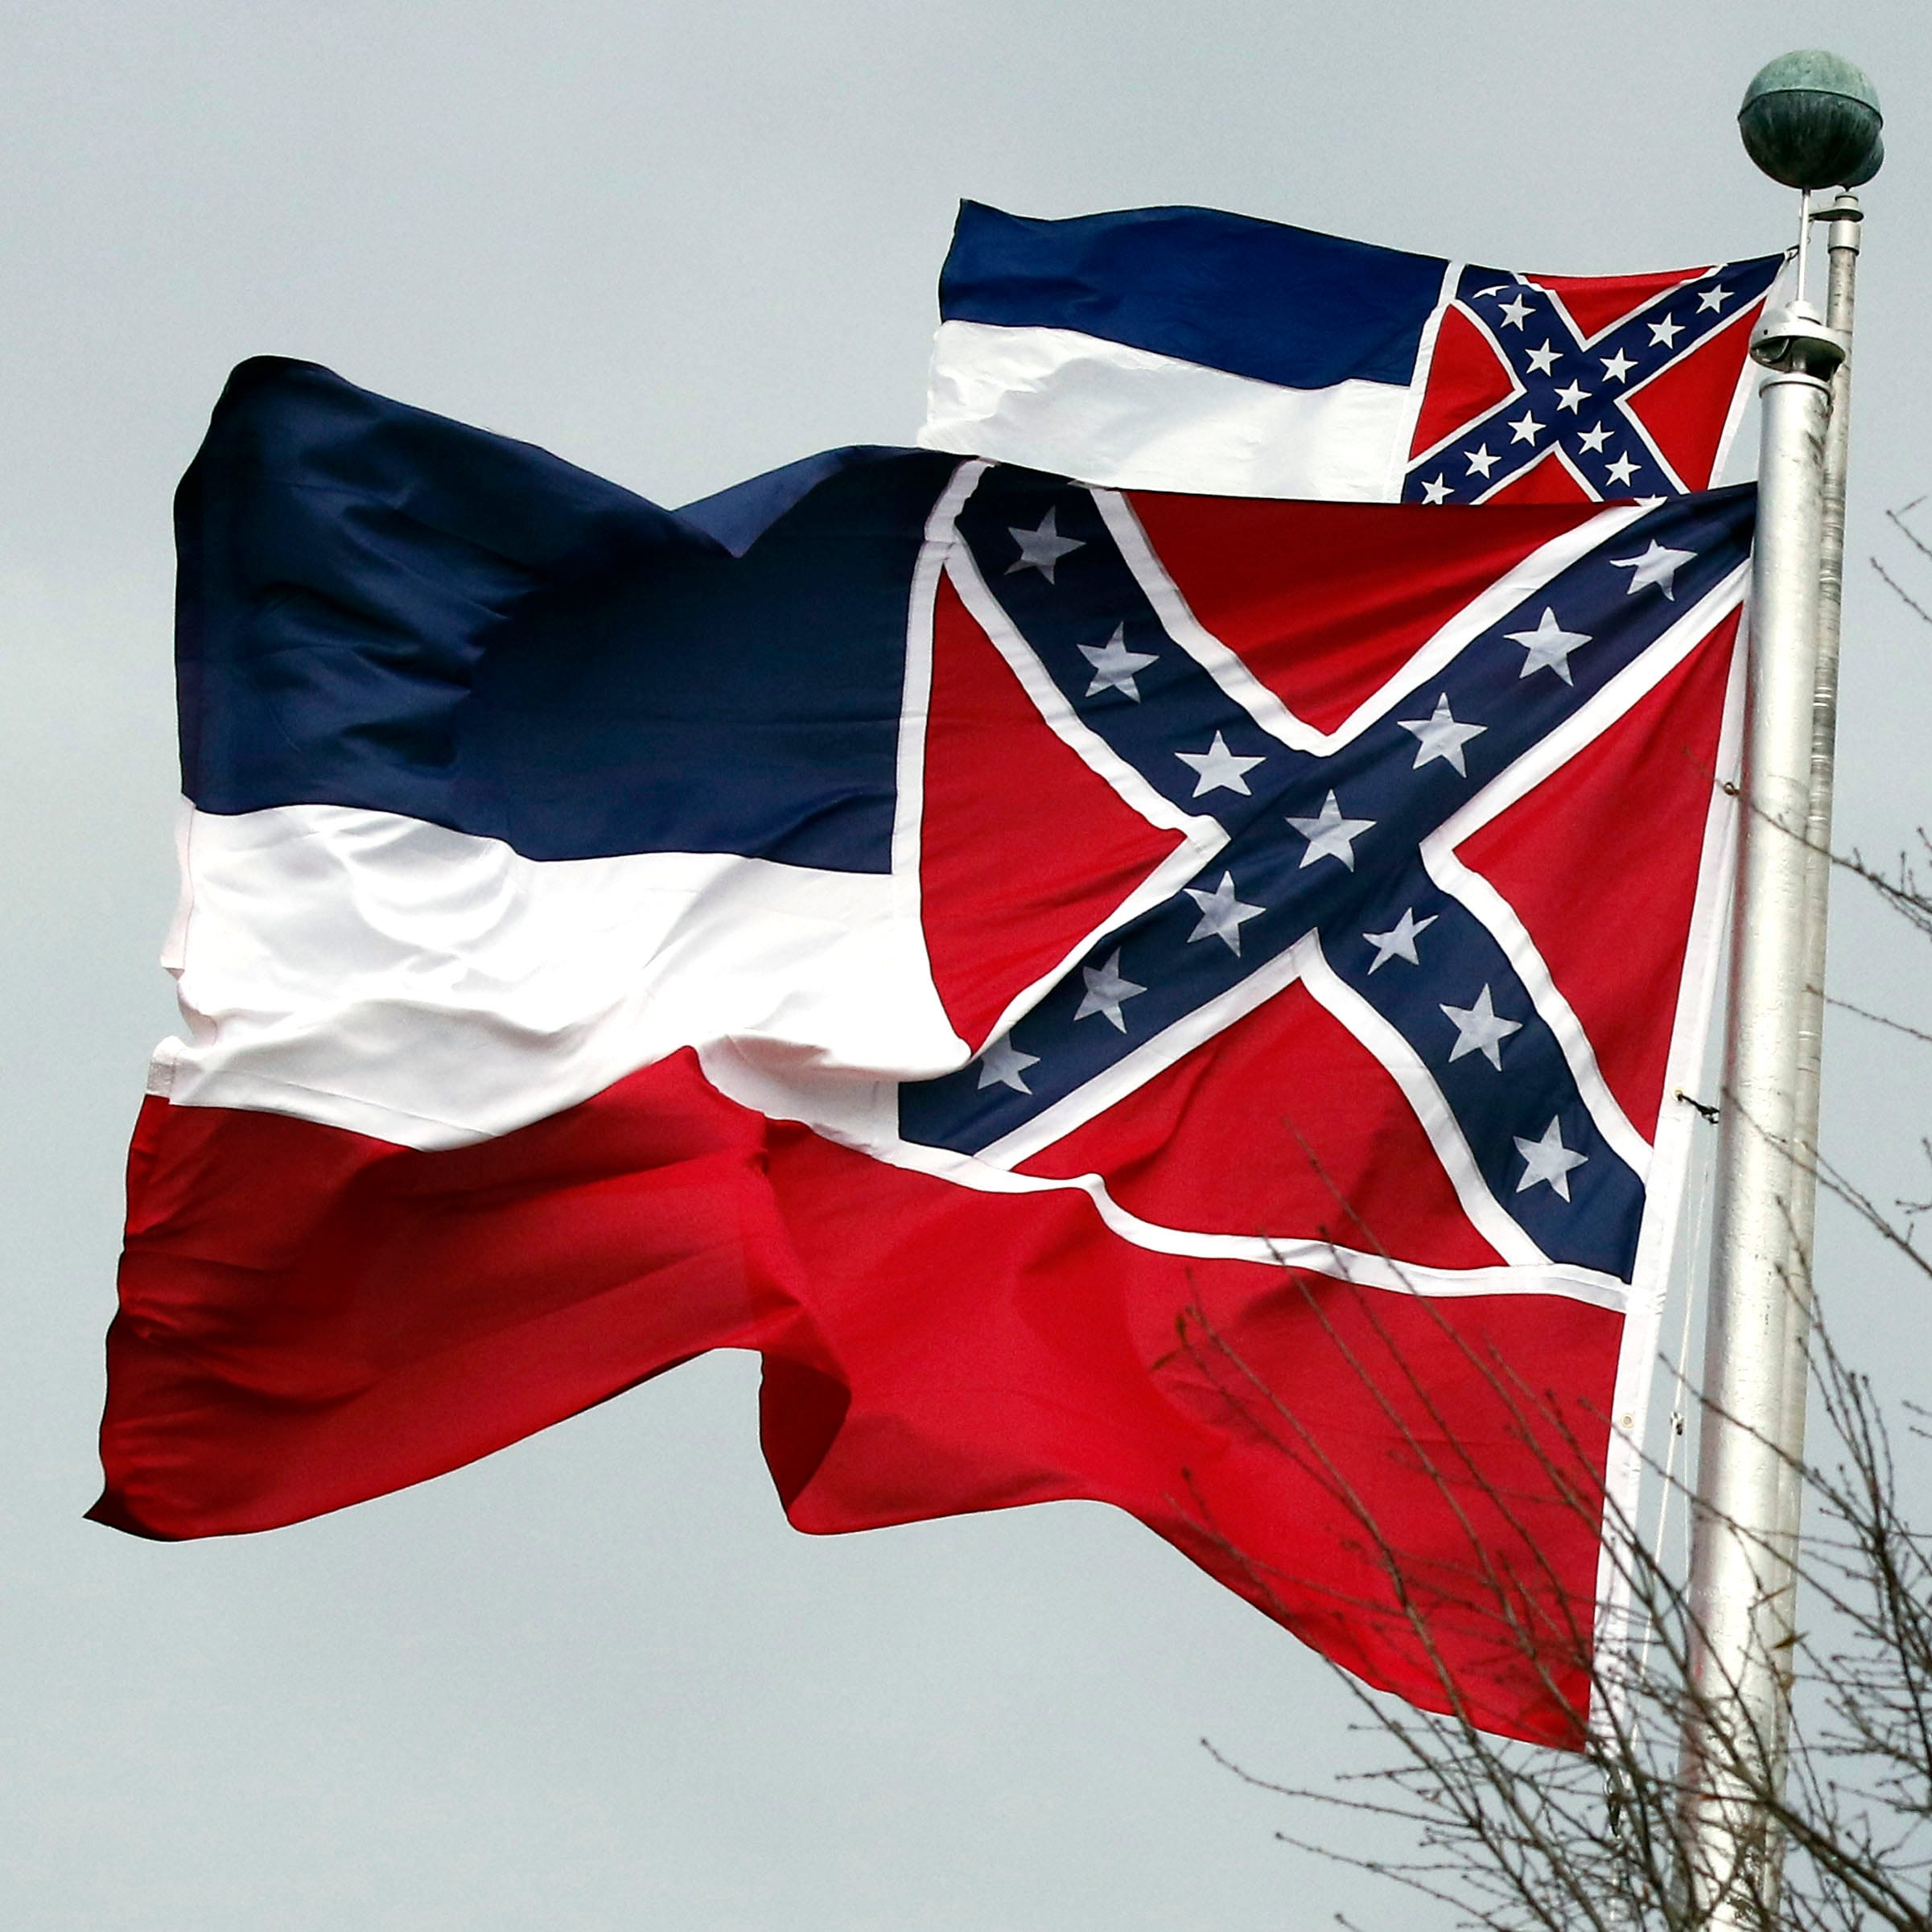 Mississippi flag is not a banner that unifies us, so change it, AG hopeful says